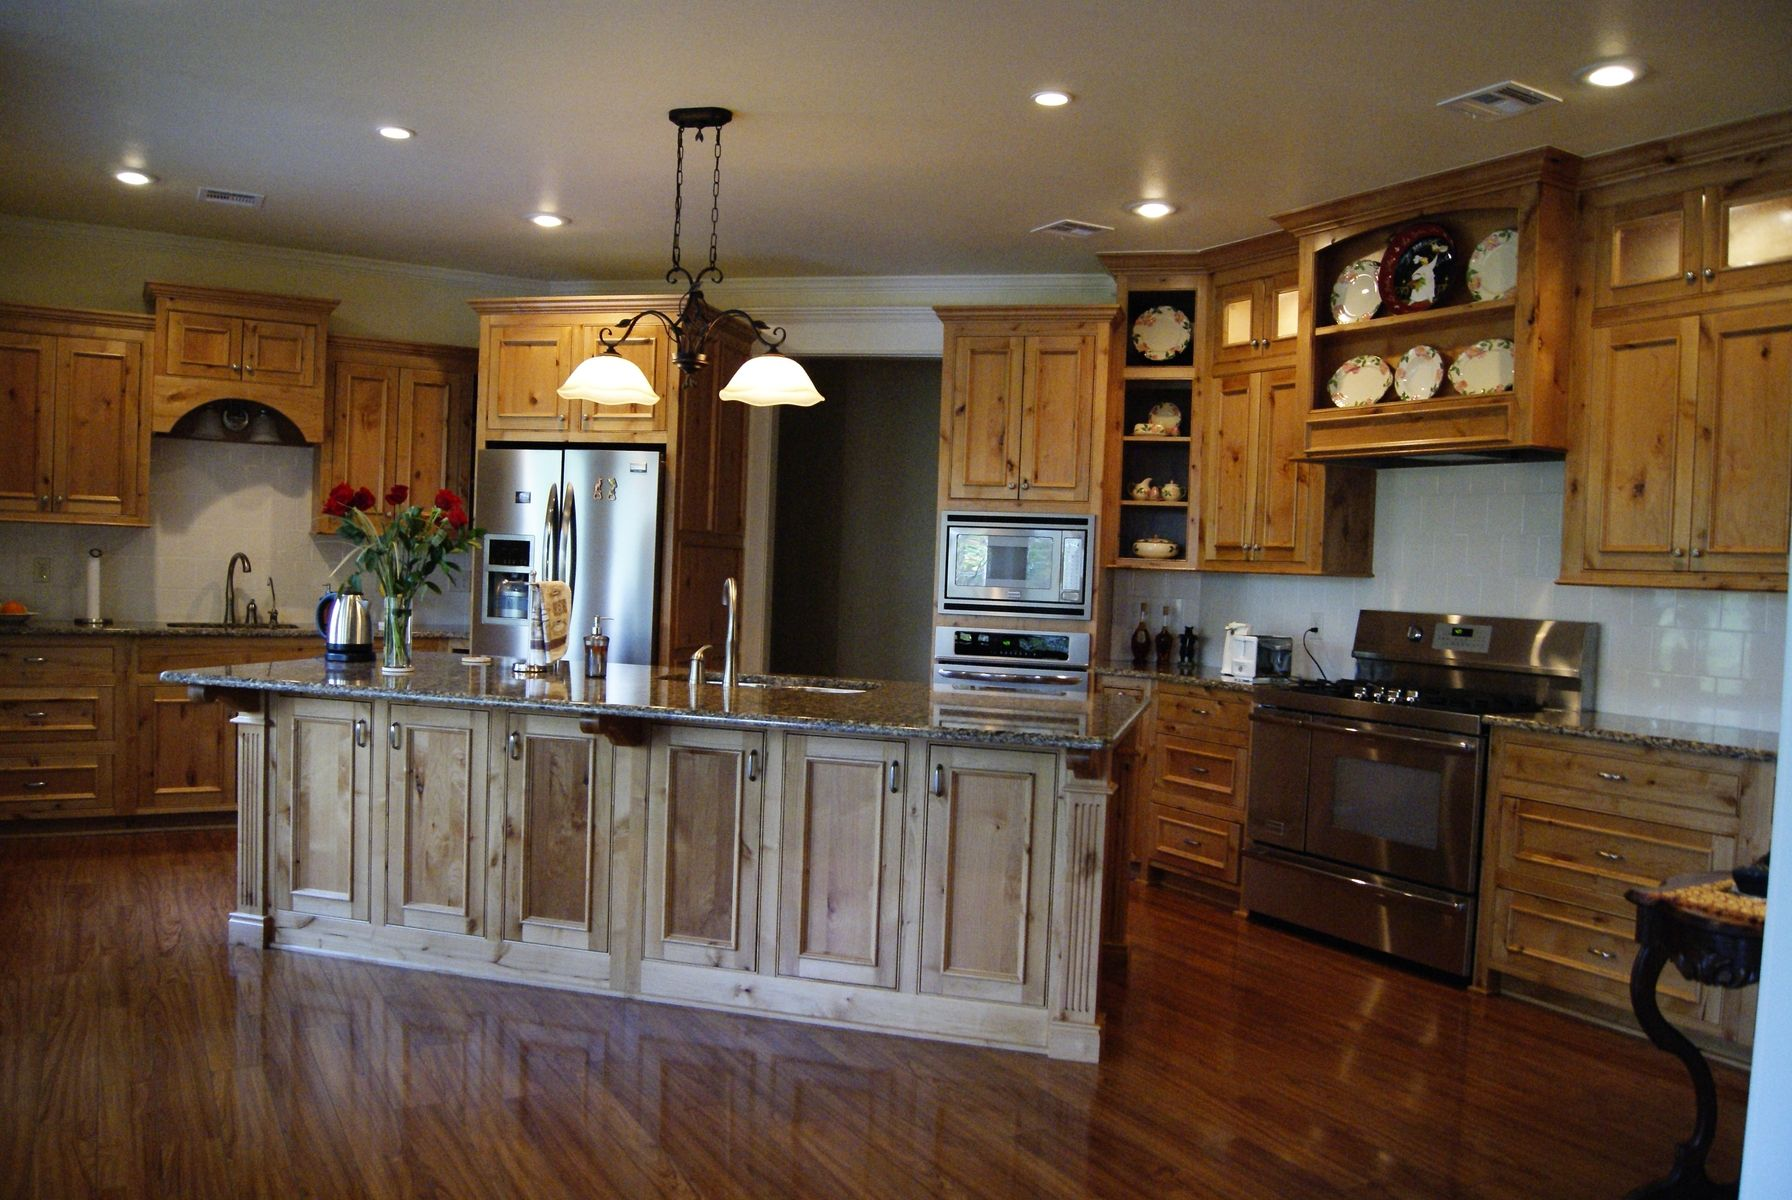 Hand made classic country kitchen by grayson artistry in for Old country style kitchen